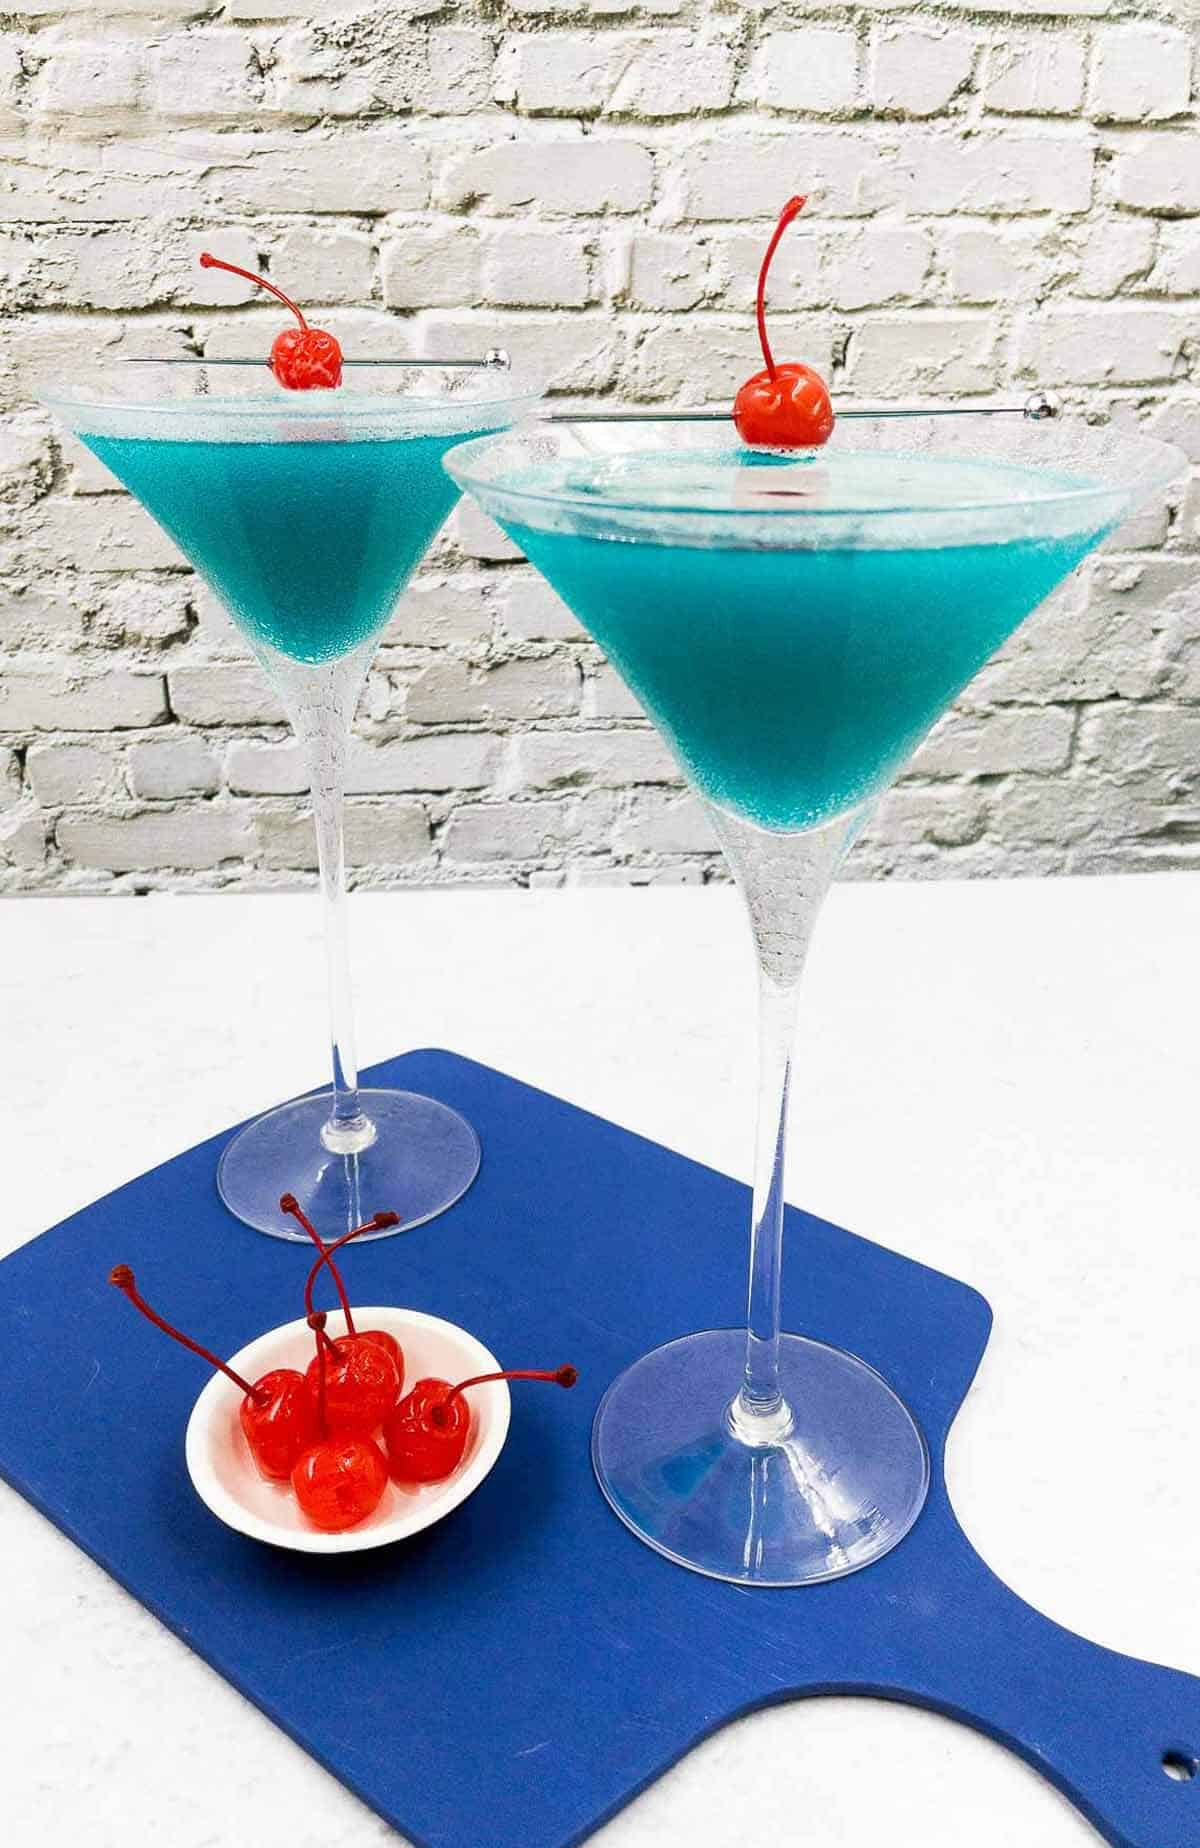 Two Envy cocktails with maraschino cherries.